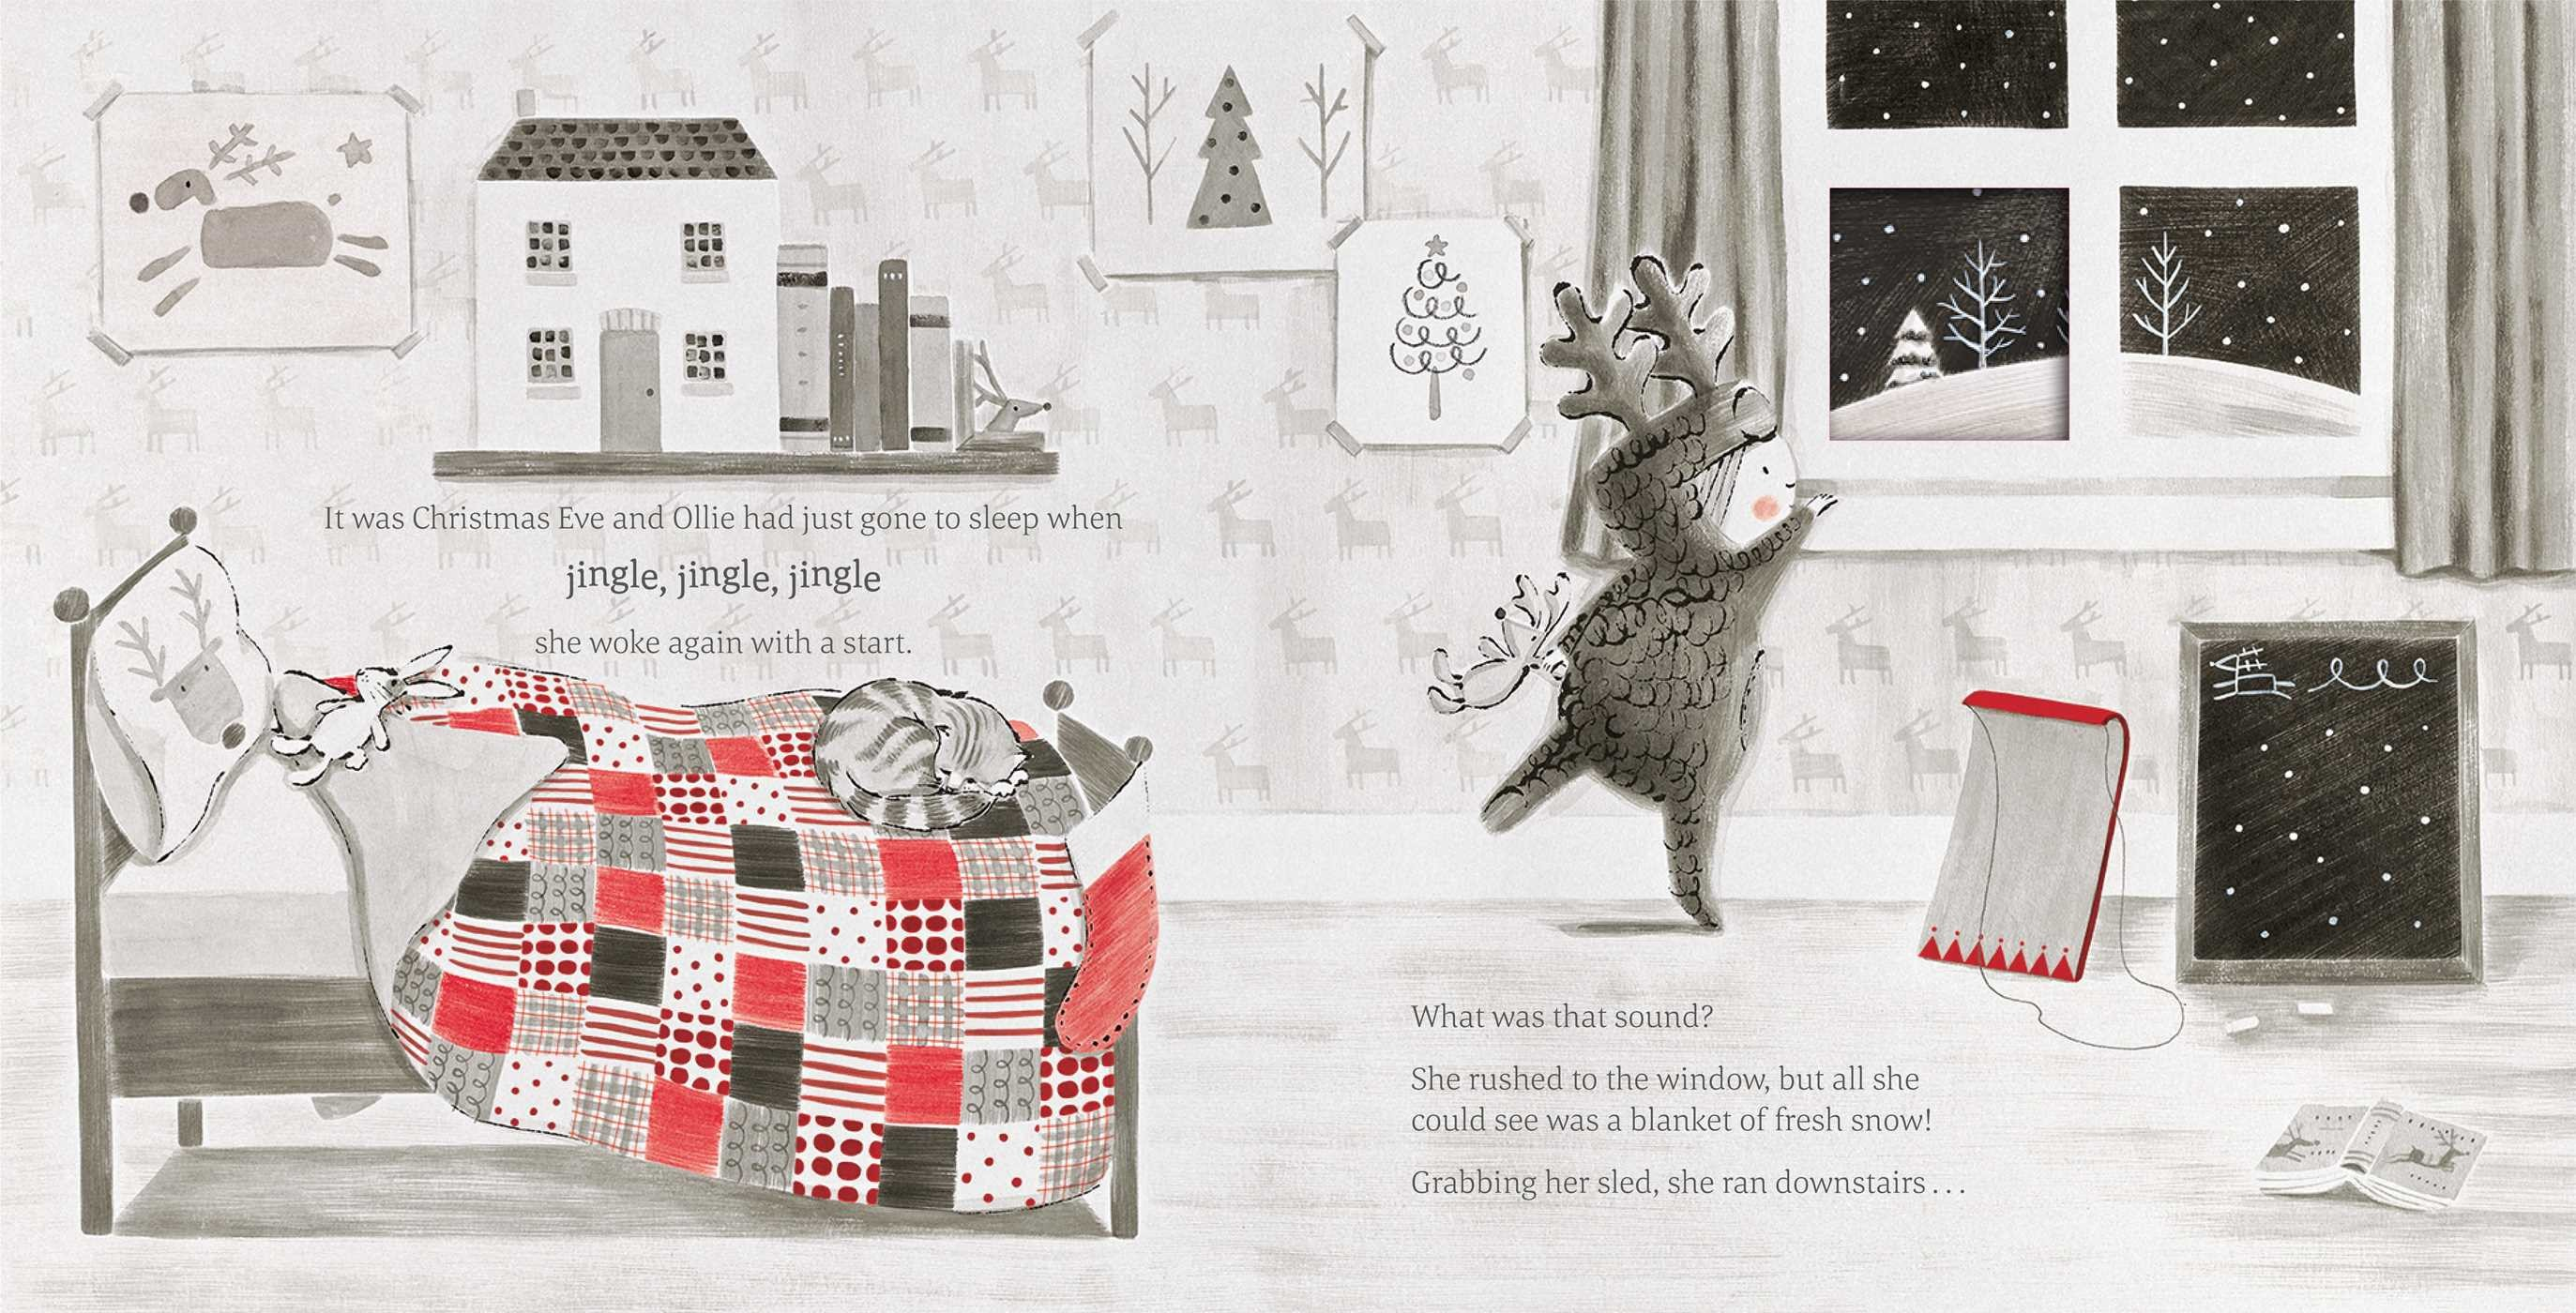 celebrate-picture-books-picture-book-review-the-little-reindeer-bells-jingle